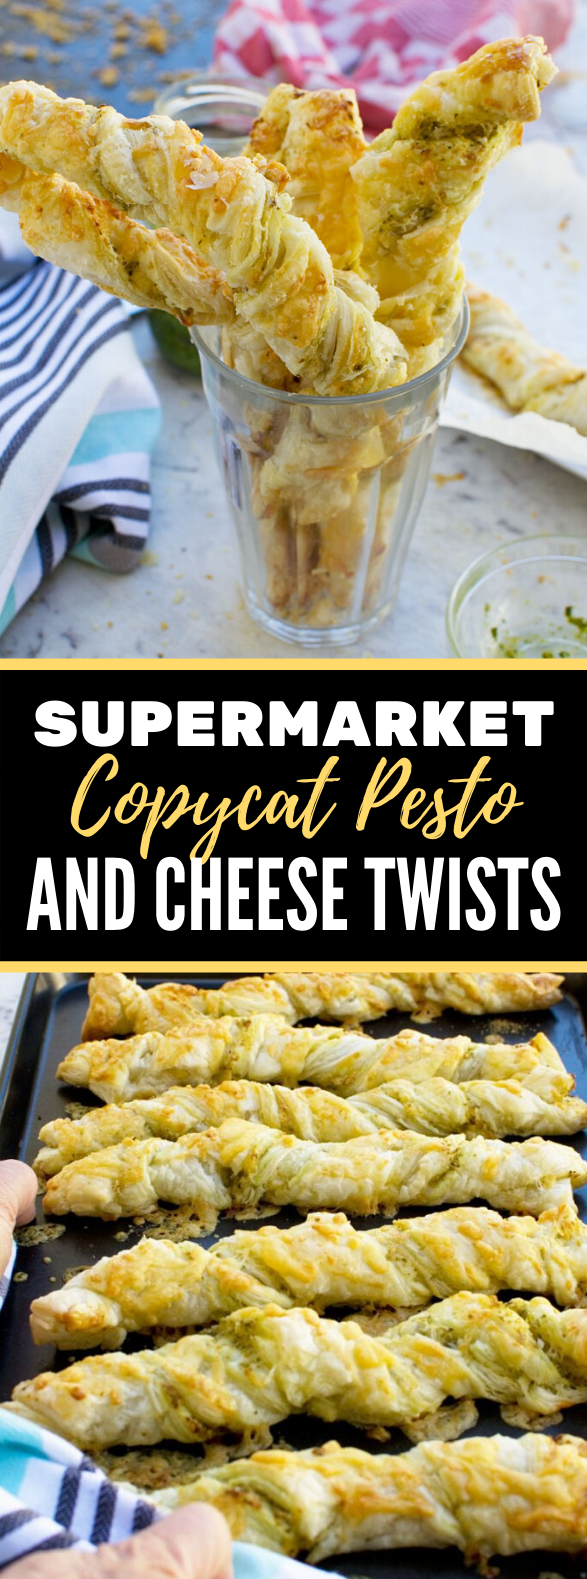 SUPERMARKET COPYCAT PESTO AND CHEESE TWISTS #snack #vegetarian